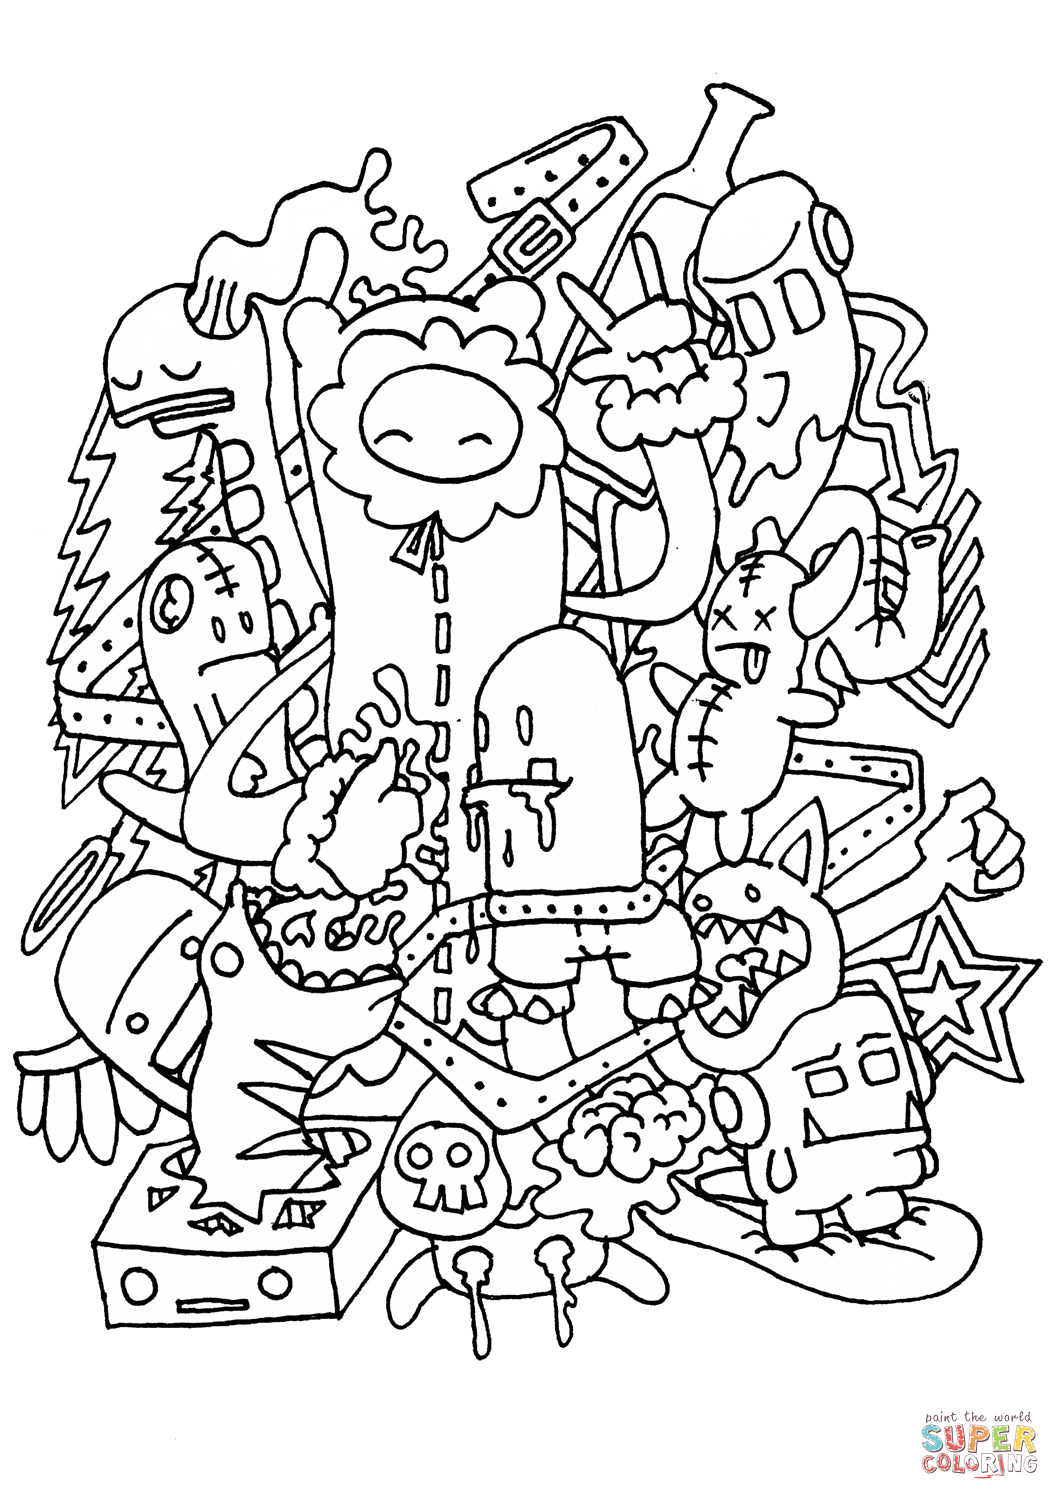 Doodle Rocking Coloring Page Free Printable Coloring Pages